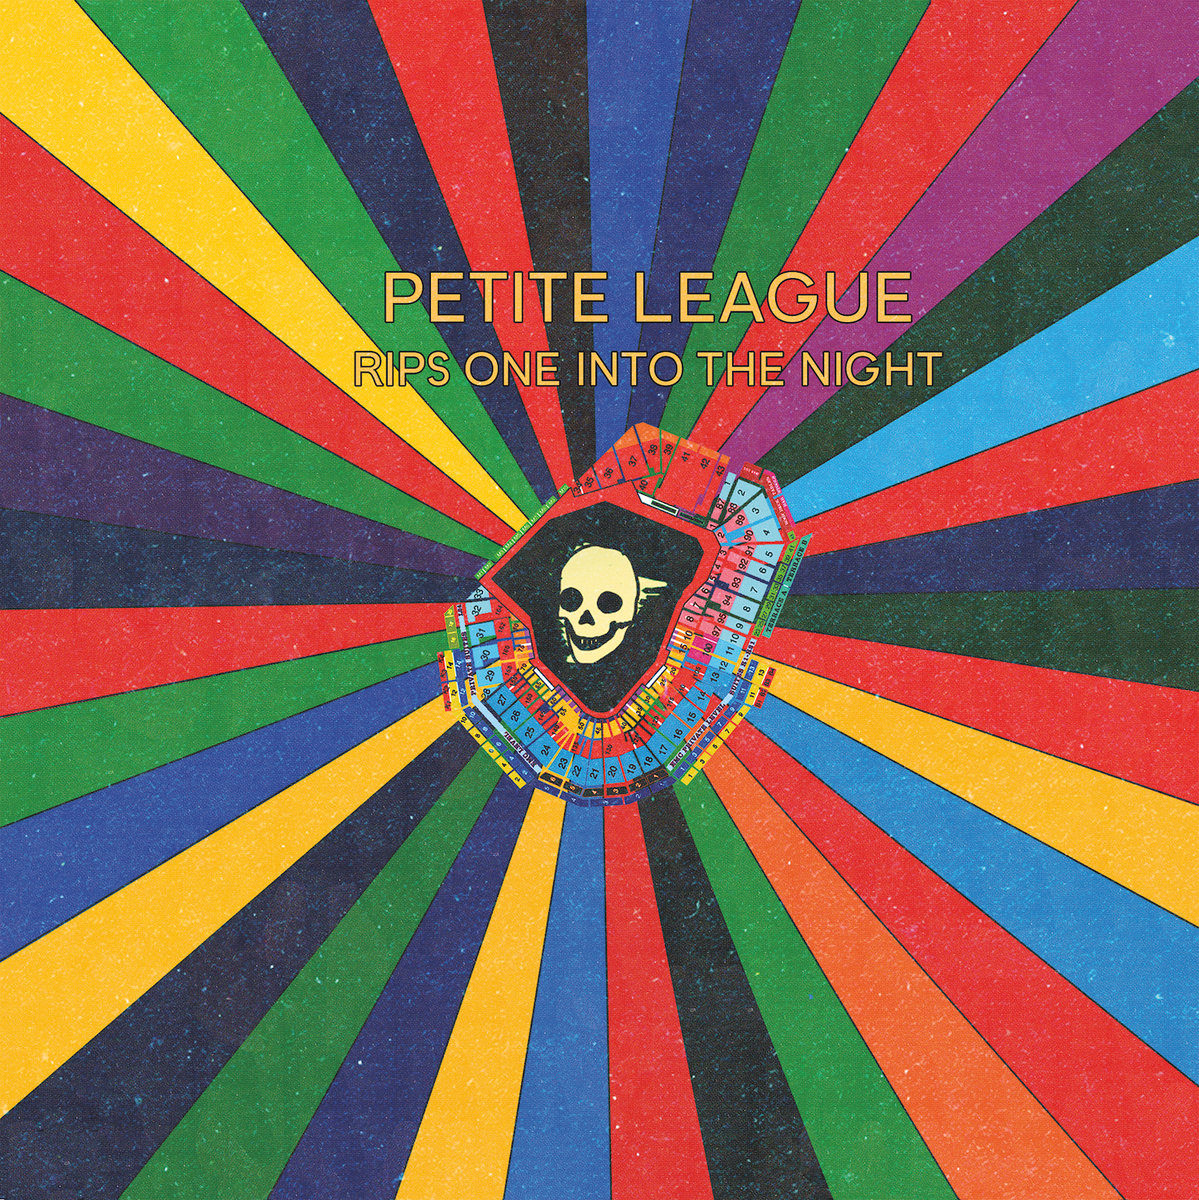 Petite League | Rips One Into The Night | 3hive.com